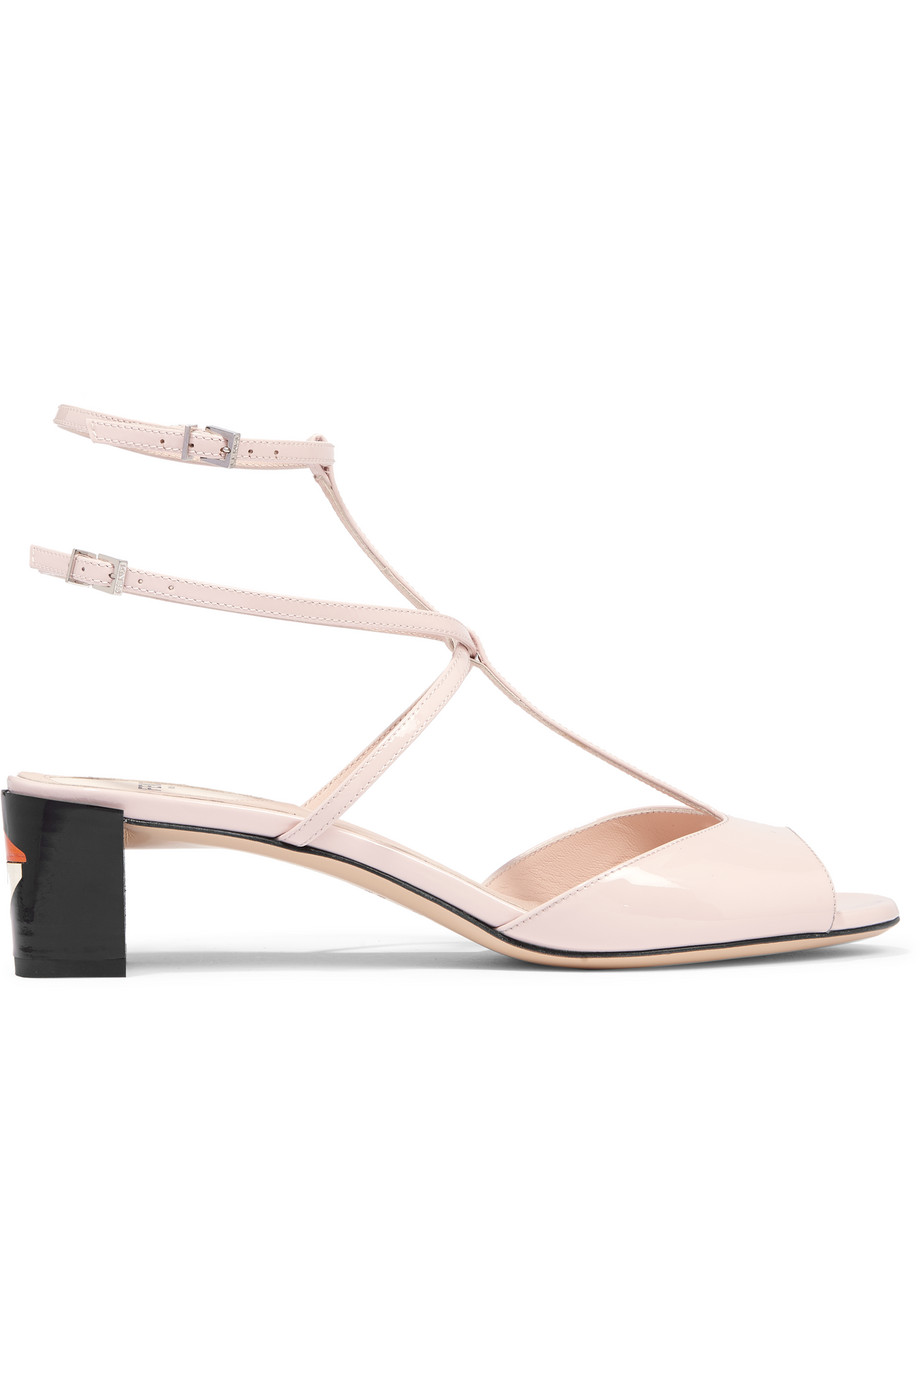 Fendi Patent-Leather Sandals, Pastel Pink, Women's US Size: 4.5, Size: 35